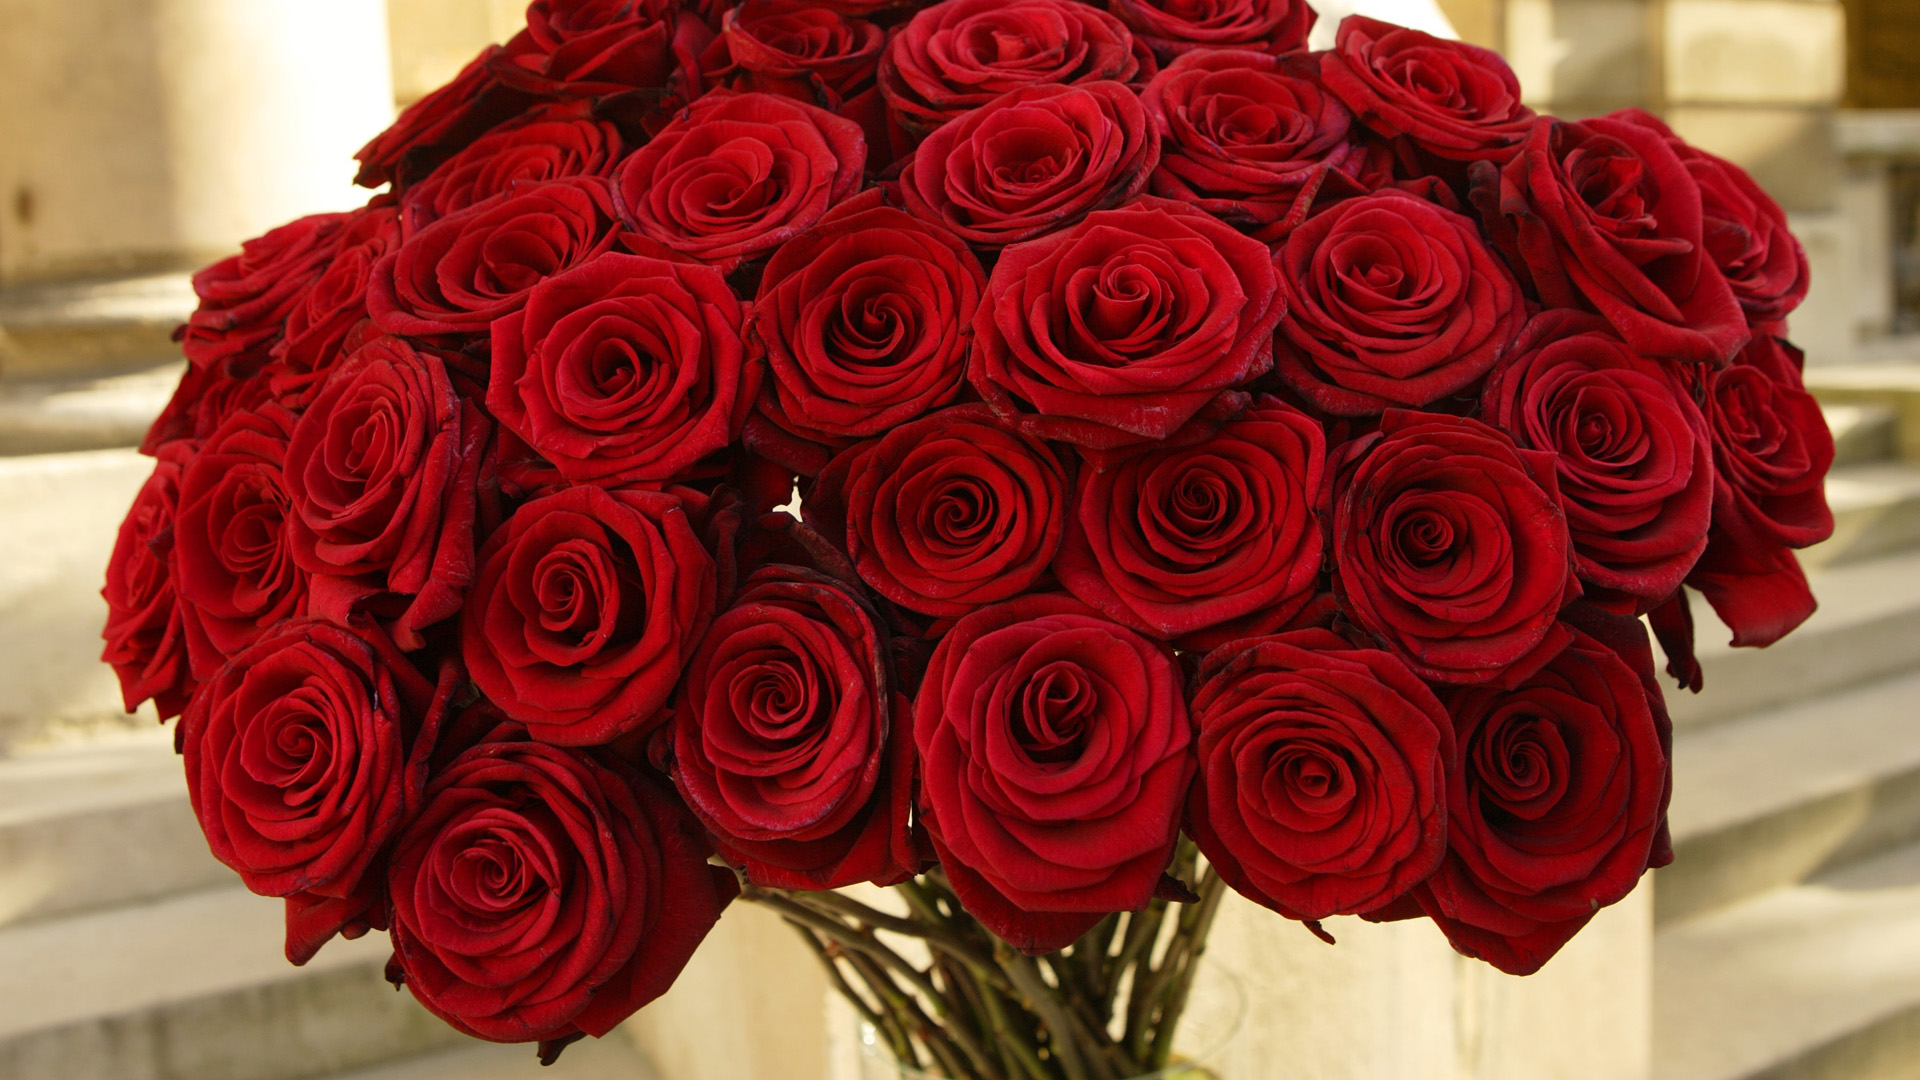 Red roses wallpaper hd - Images of red roses hd ...